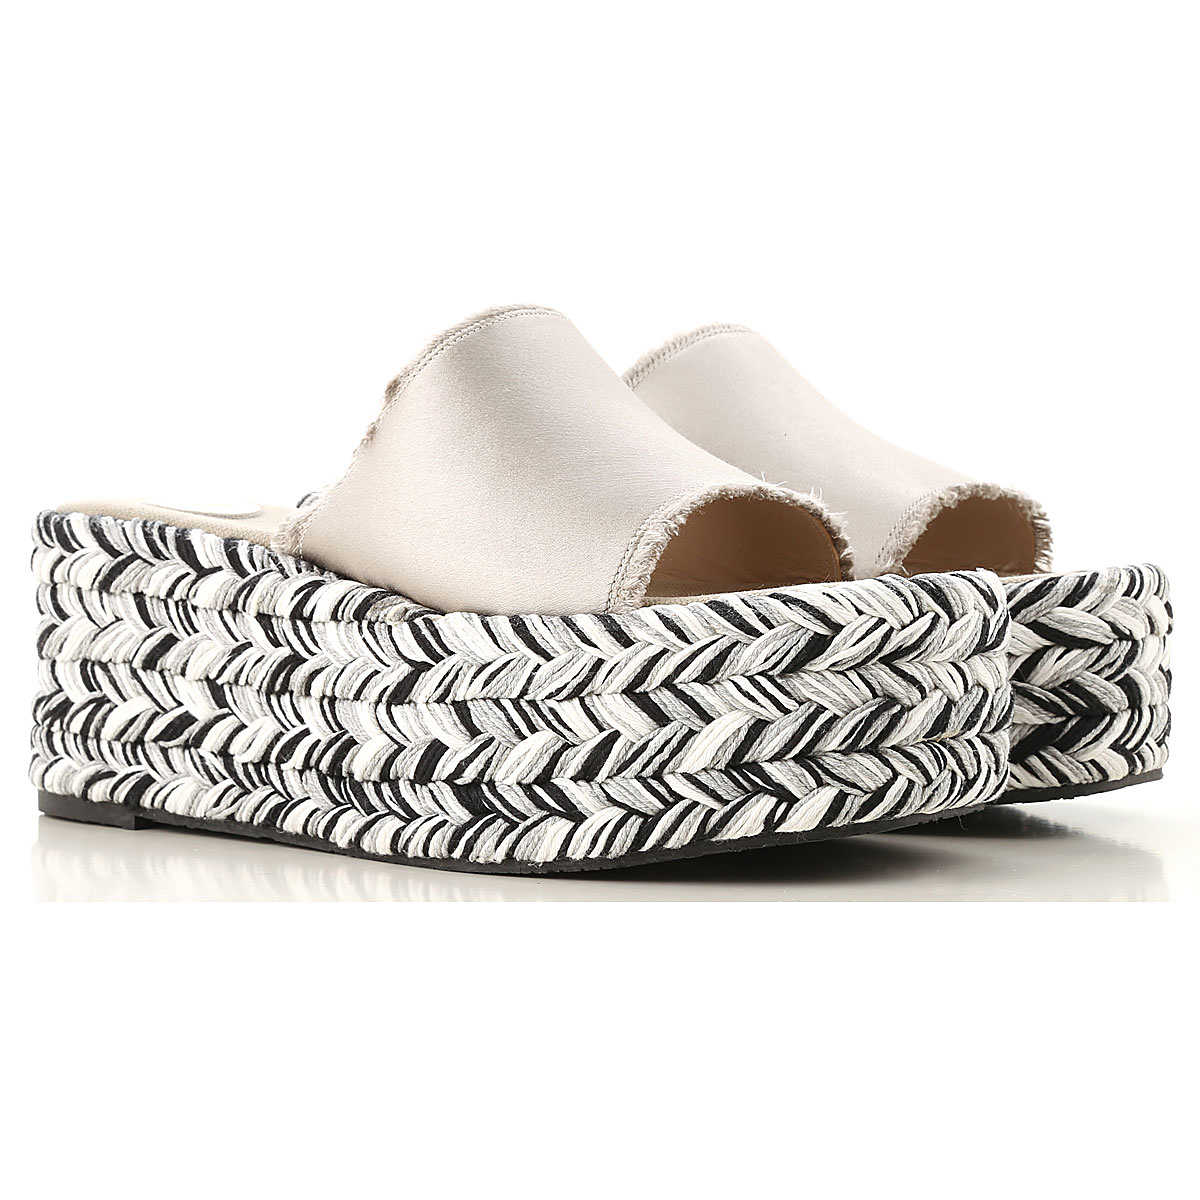 Ras Wedges for Women On Sale Silver DK - GOOFASH - Womens HOUSE SHOES